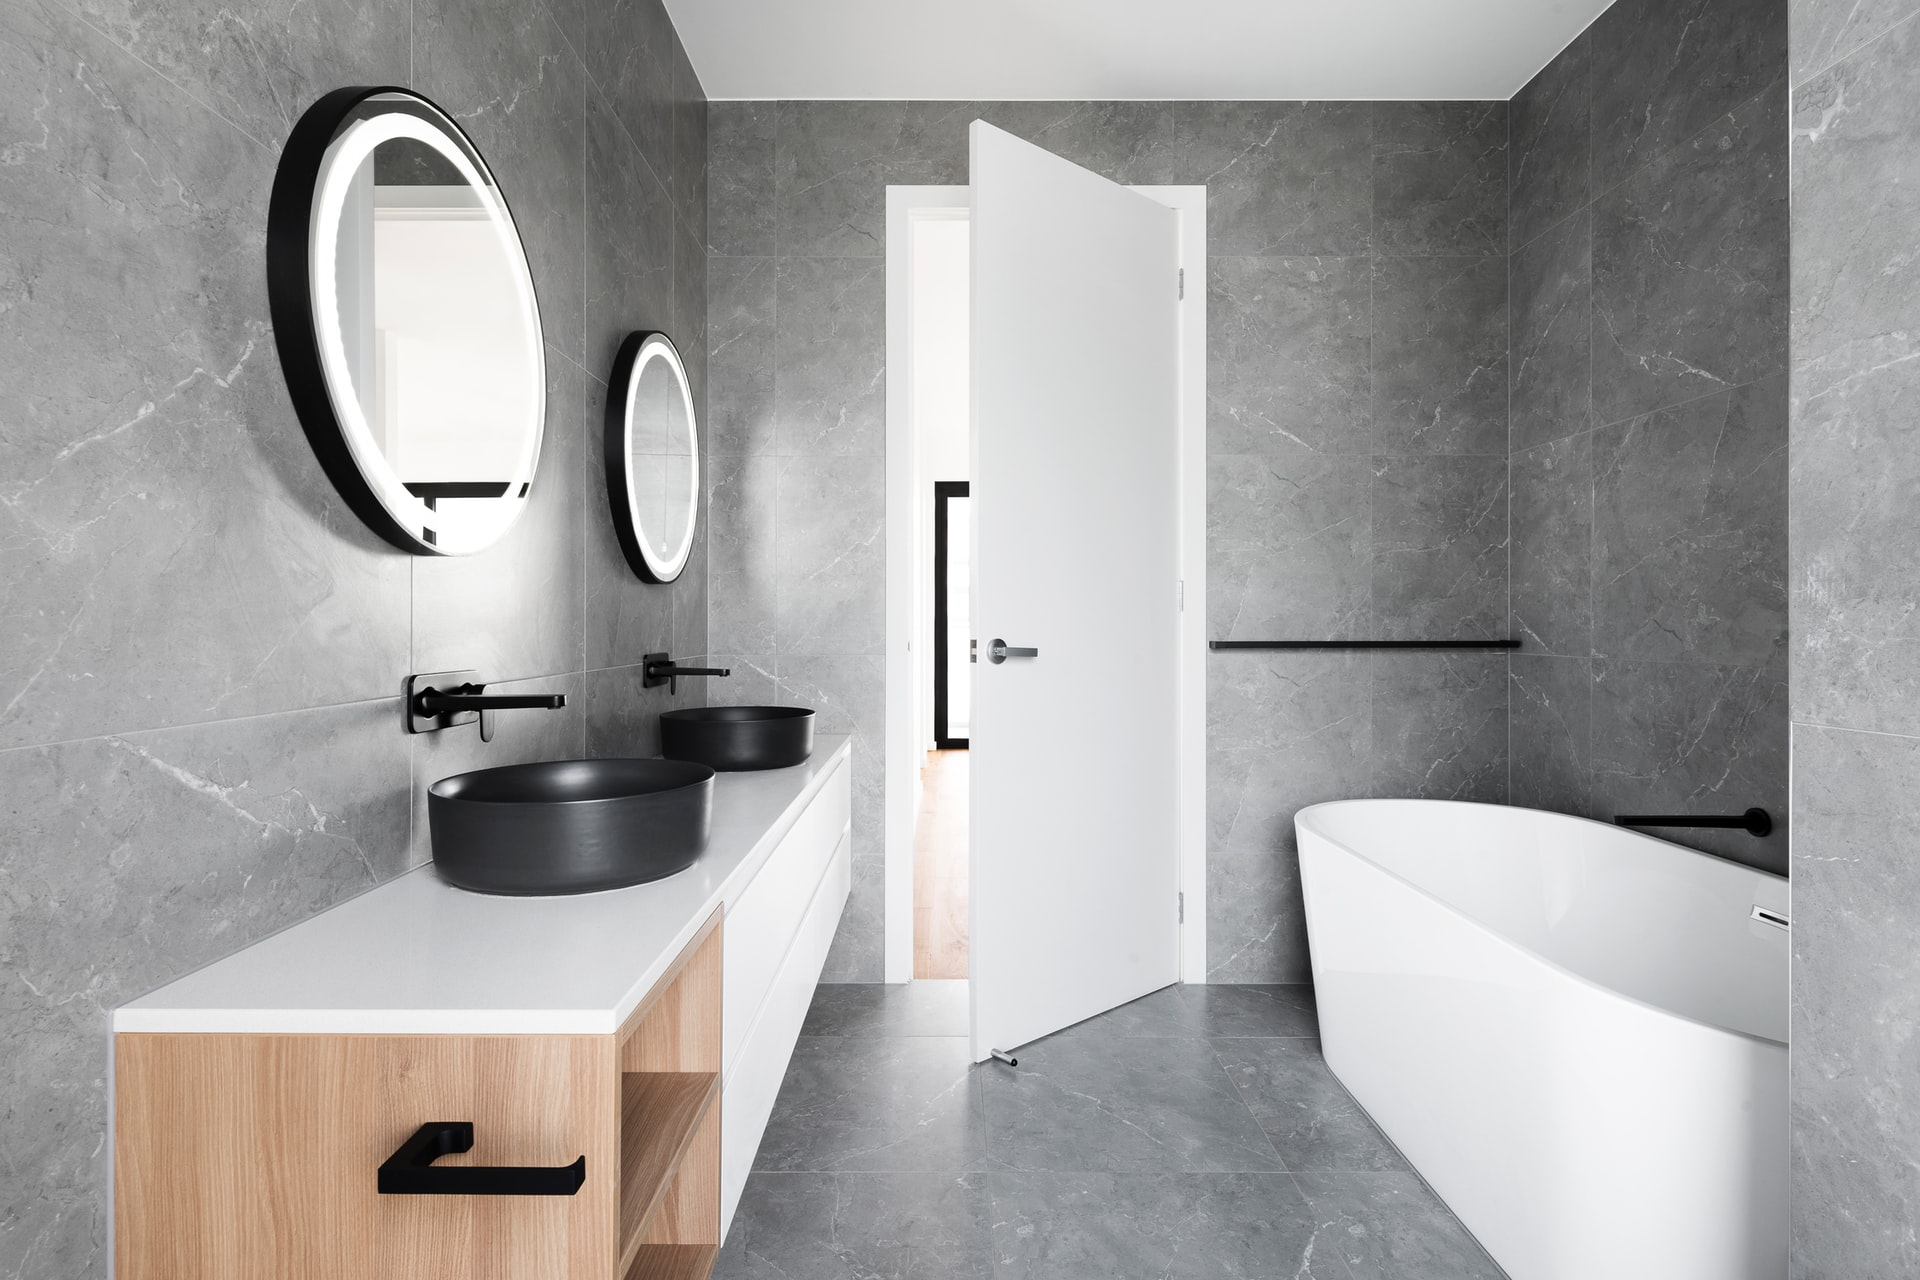 If you find yourself being comfortable inside the bathroom, there's a chance you've stumbled upon the right house.